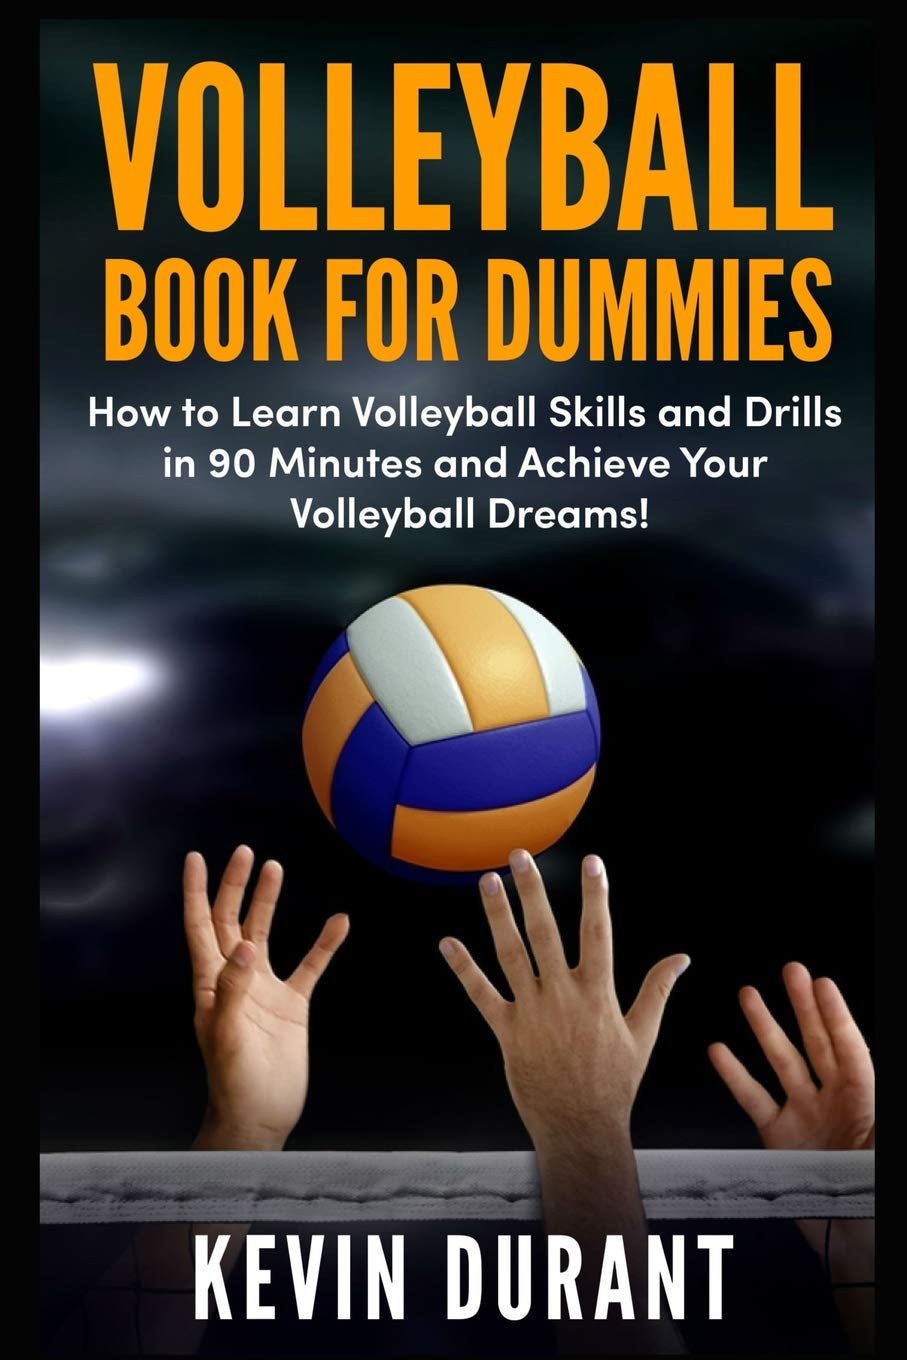 Volleyball Book For Dummies: How to learn volleyball skills and drills in 90 minutes and achieve your volleyball dreams! por Kevin Durant